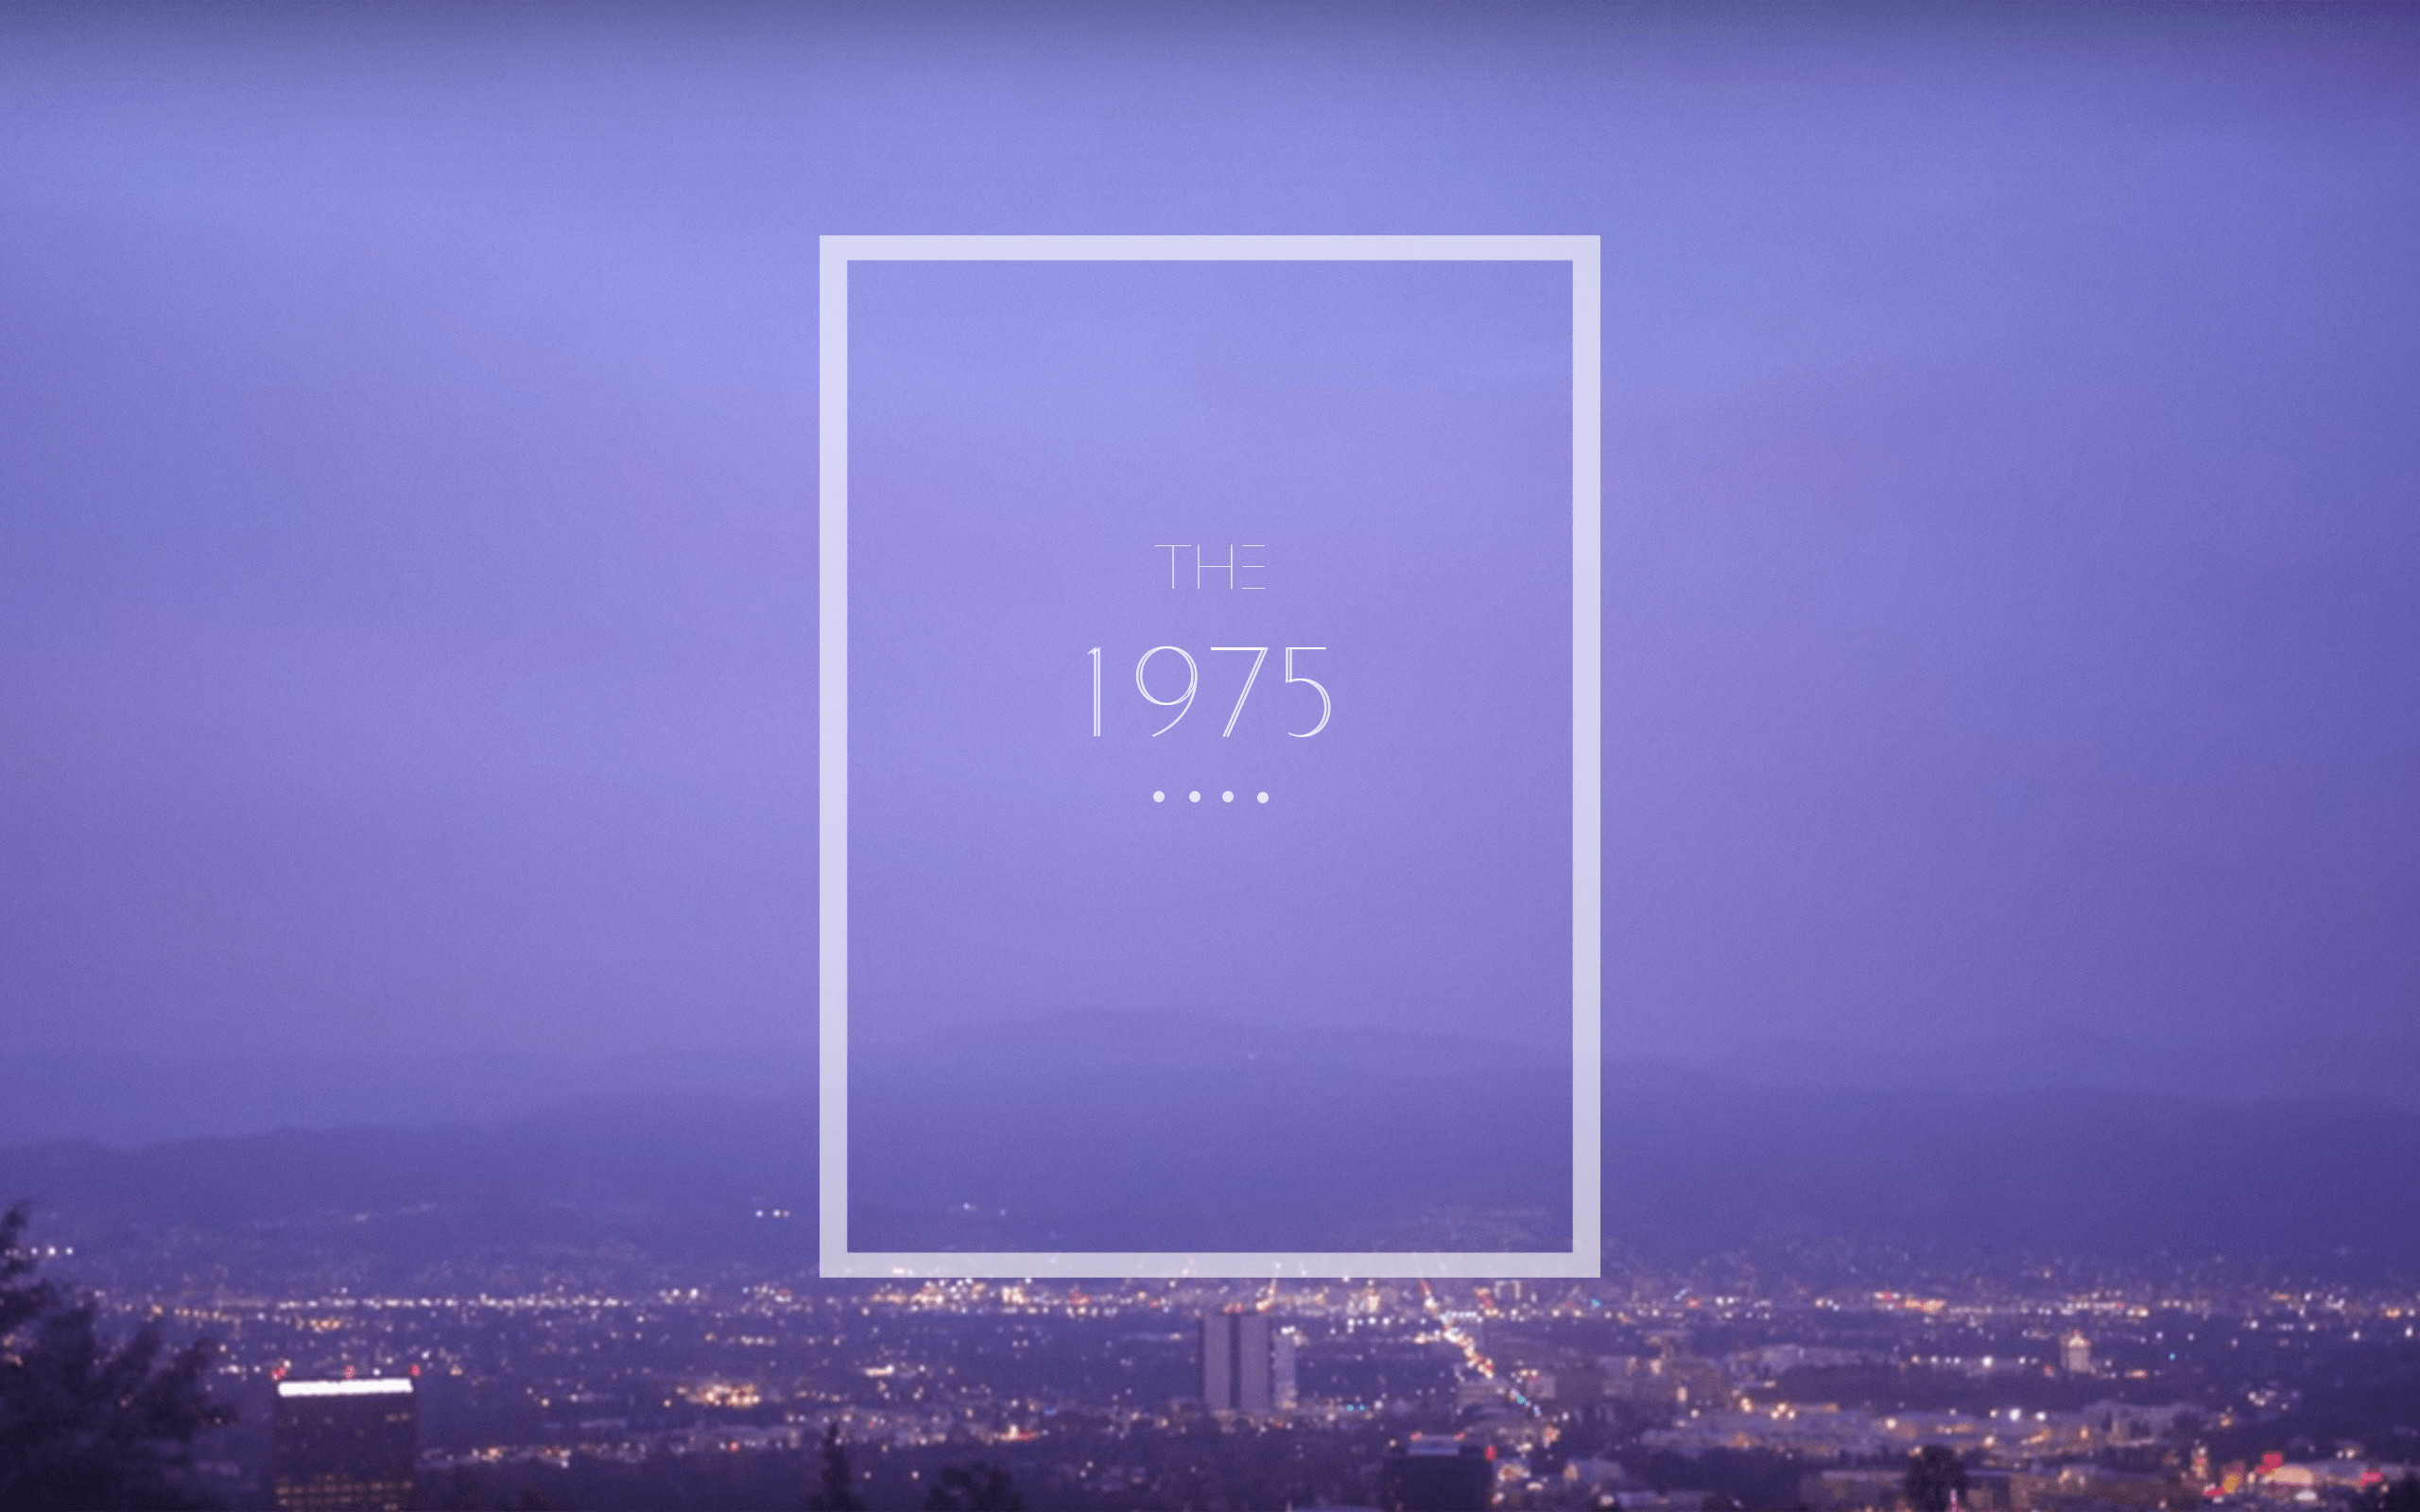 The 1975 Wallpapers 82 images 2560x1600